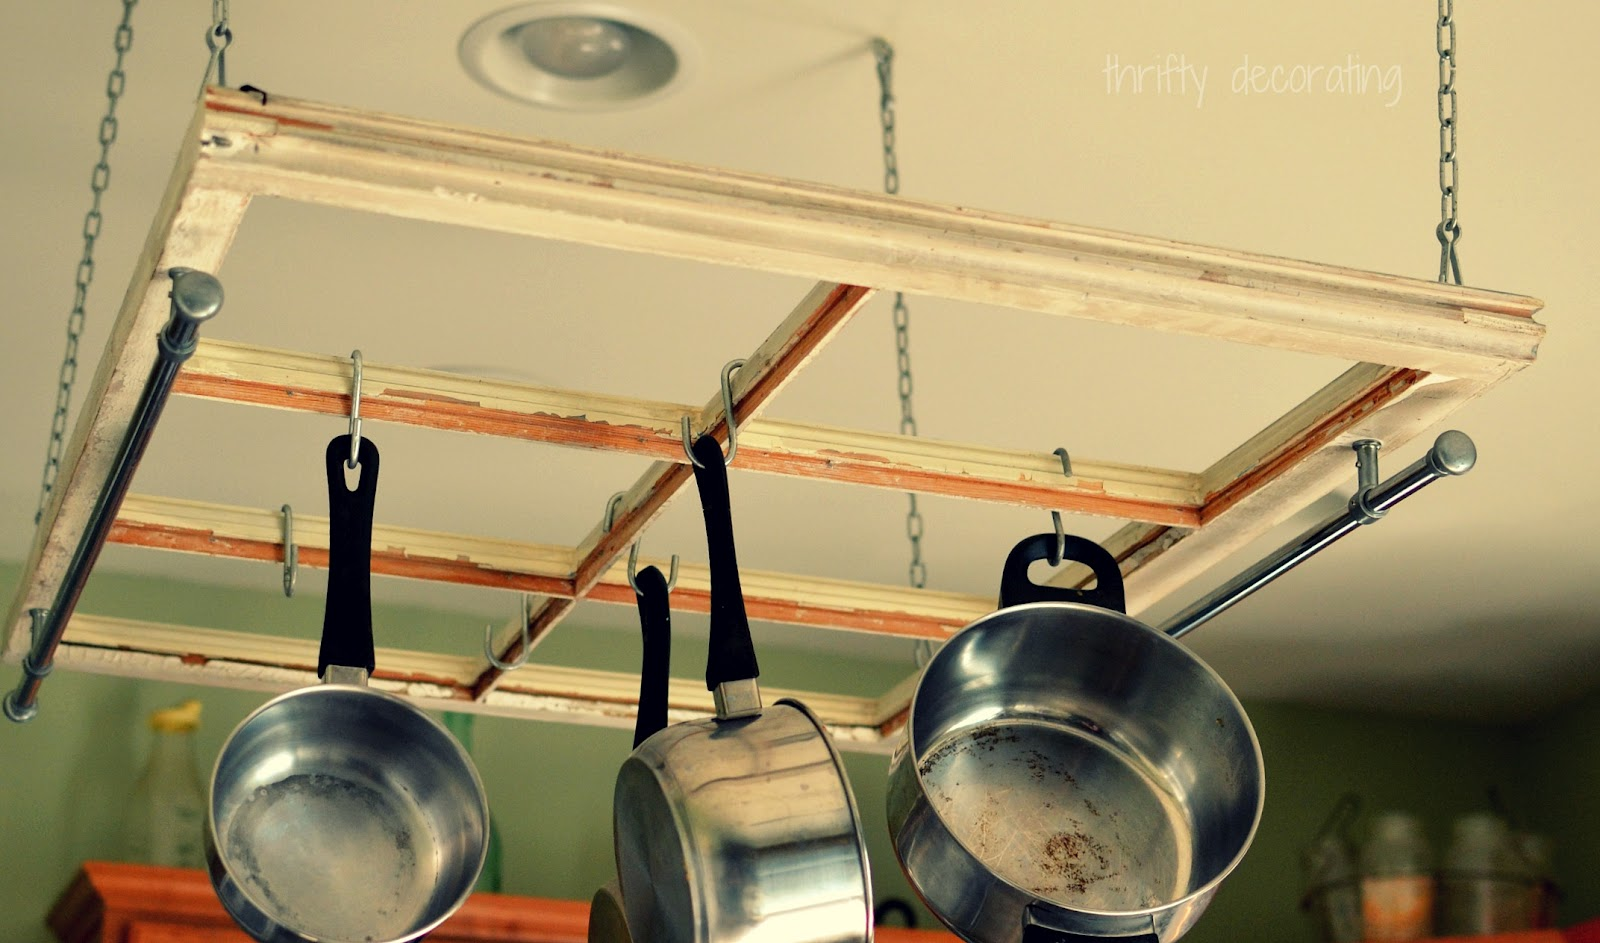 Thrifty Decorating Turn An Old Window Into A Pot Rack